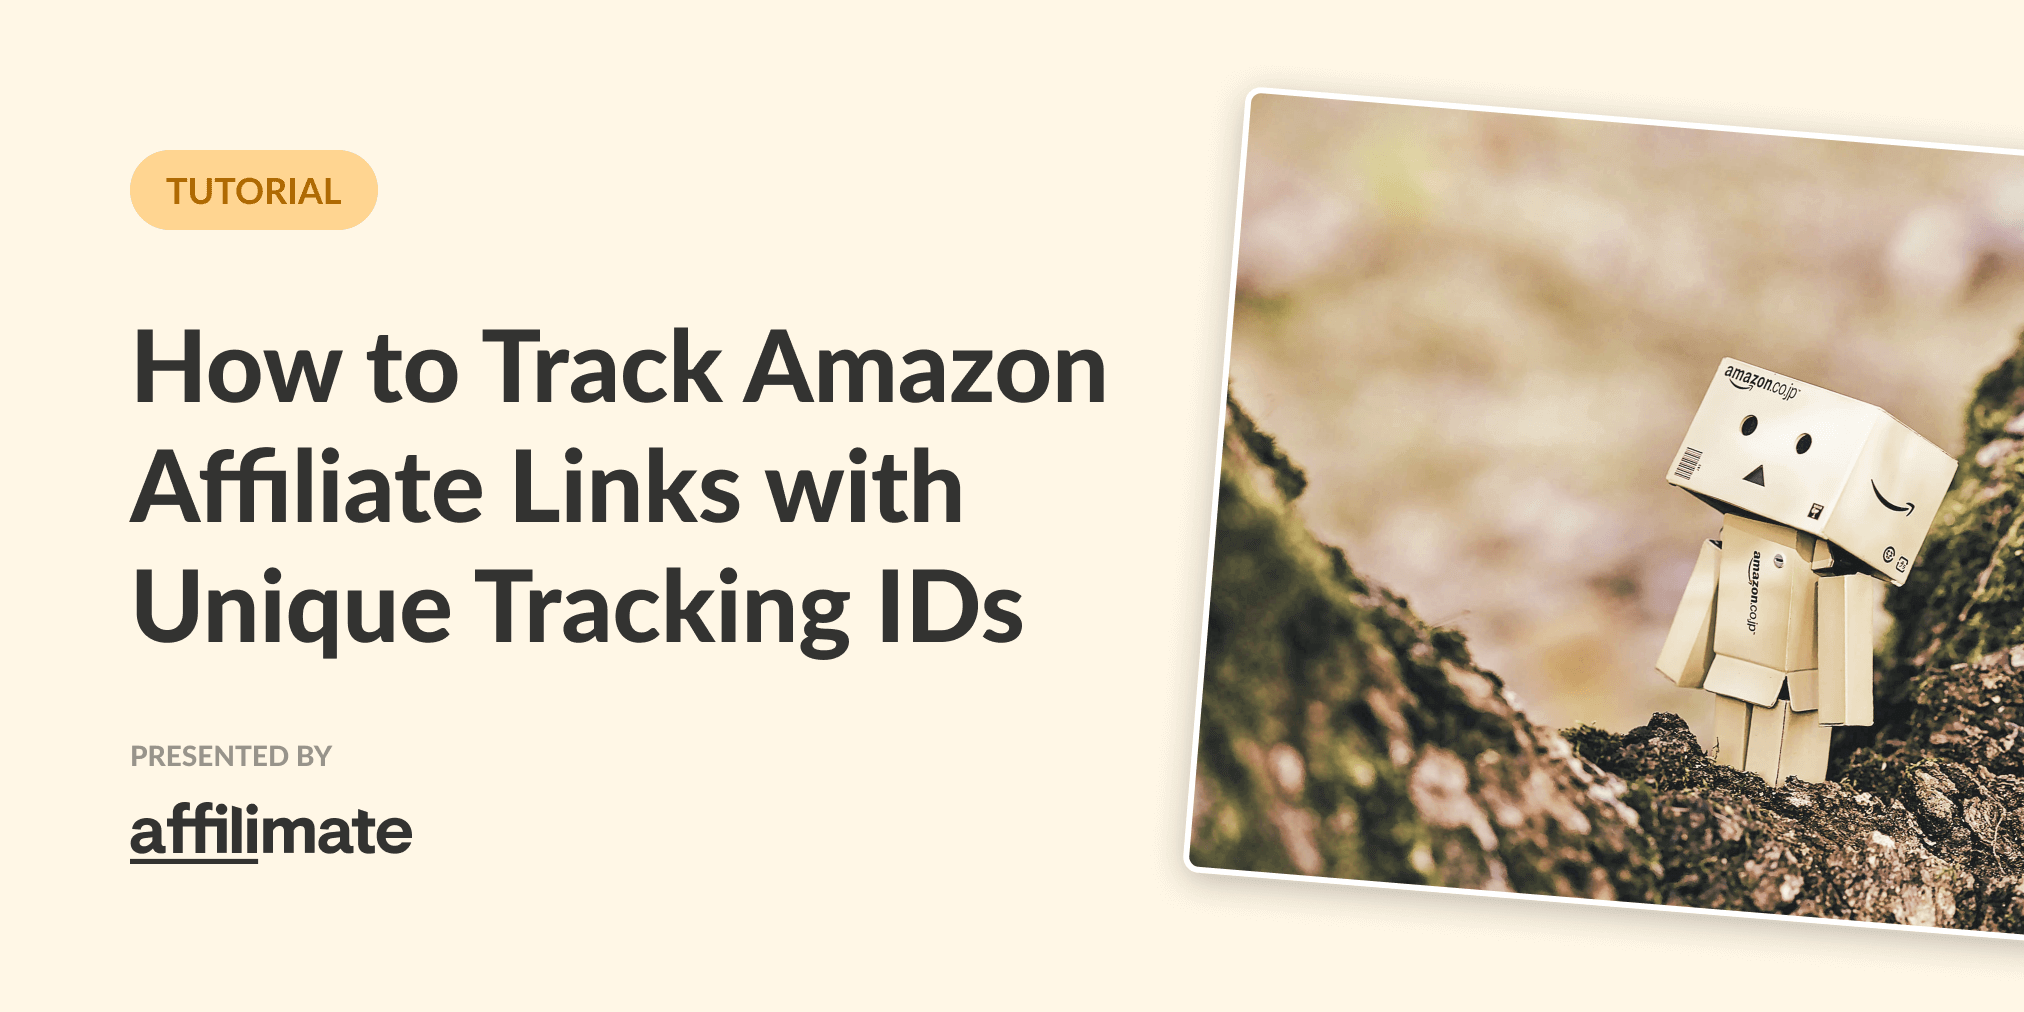 How to Track Amazon Affiliate Links with Unique Tracking IDs